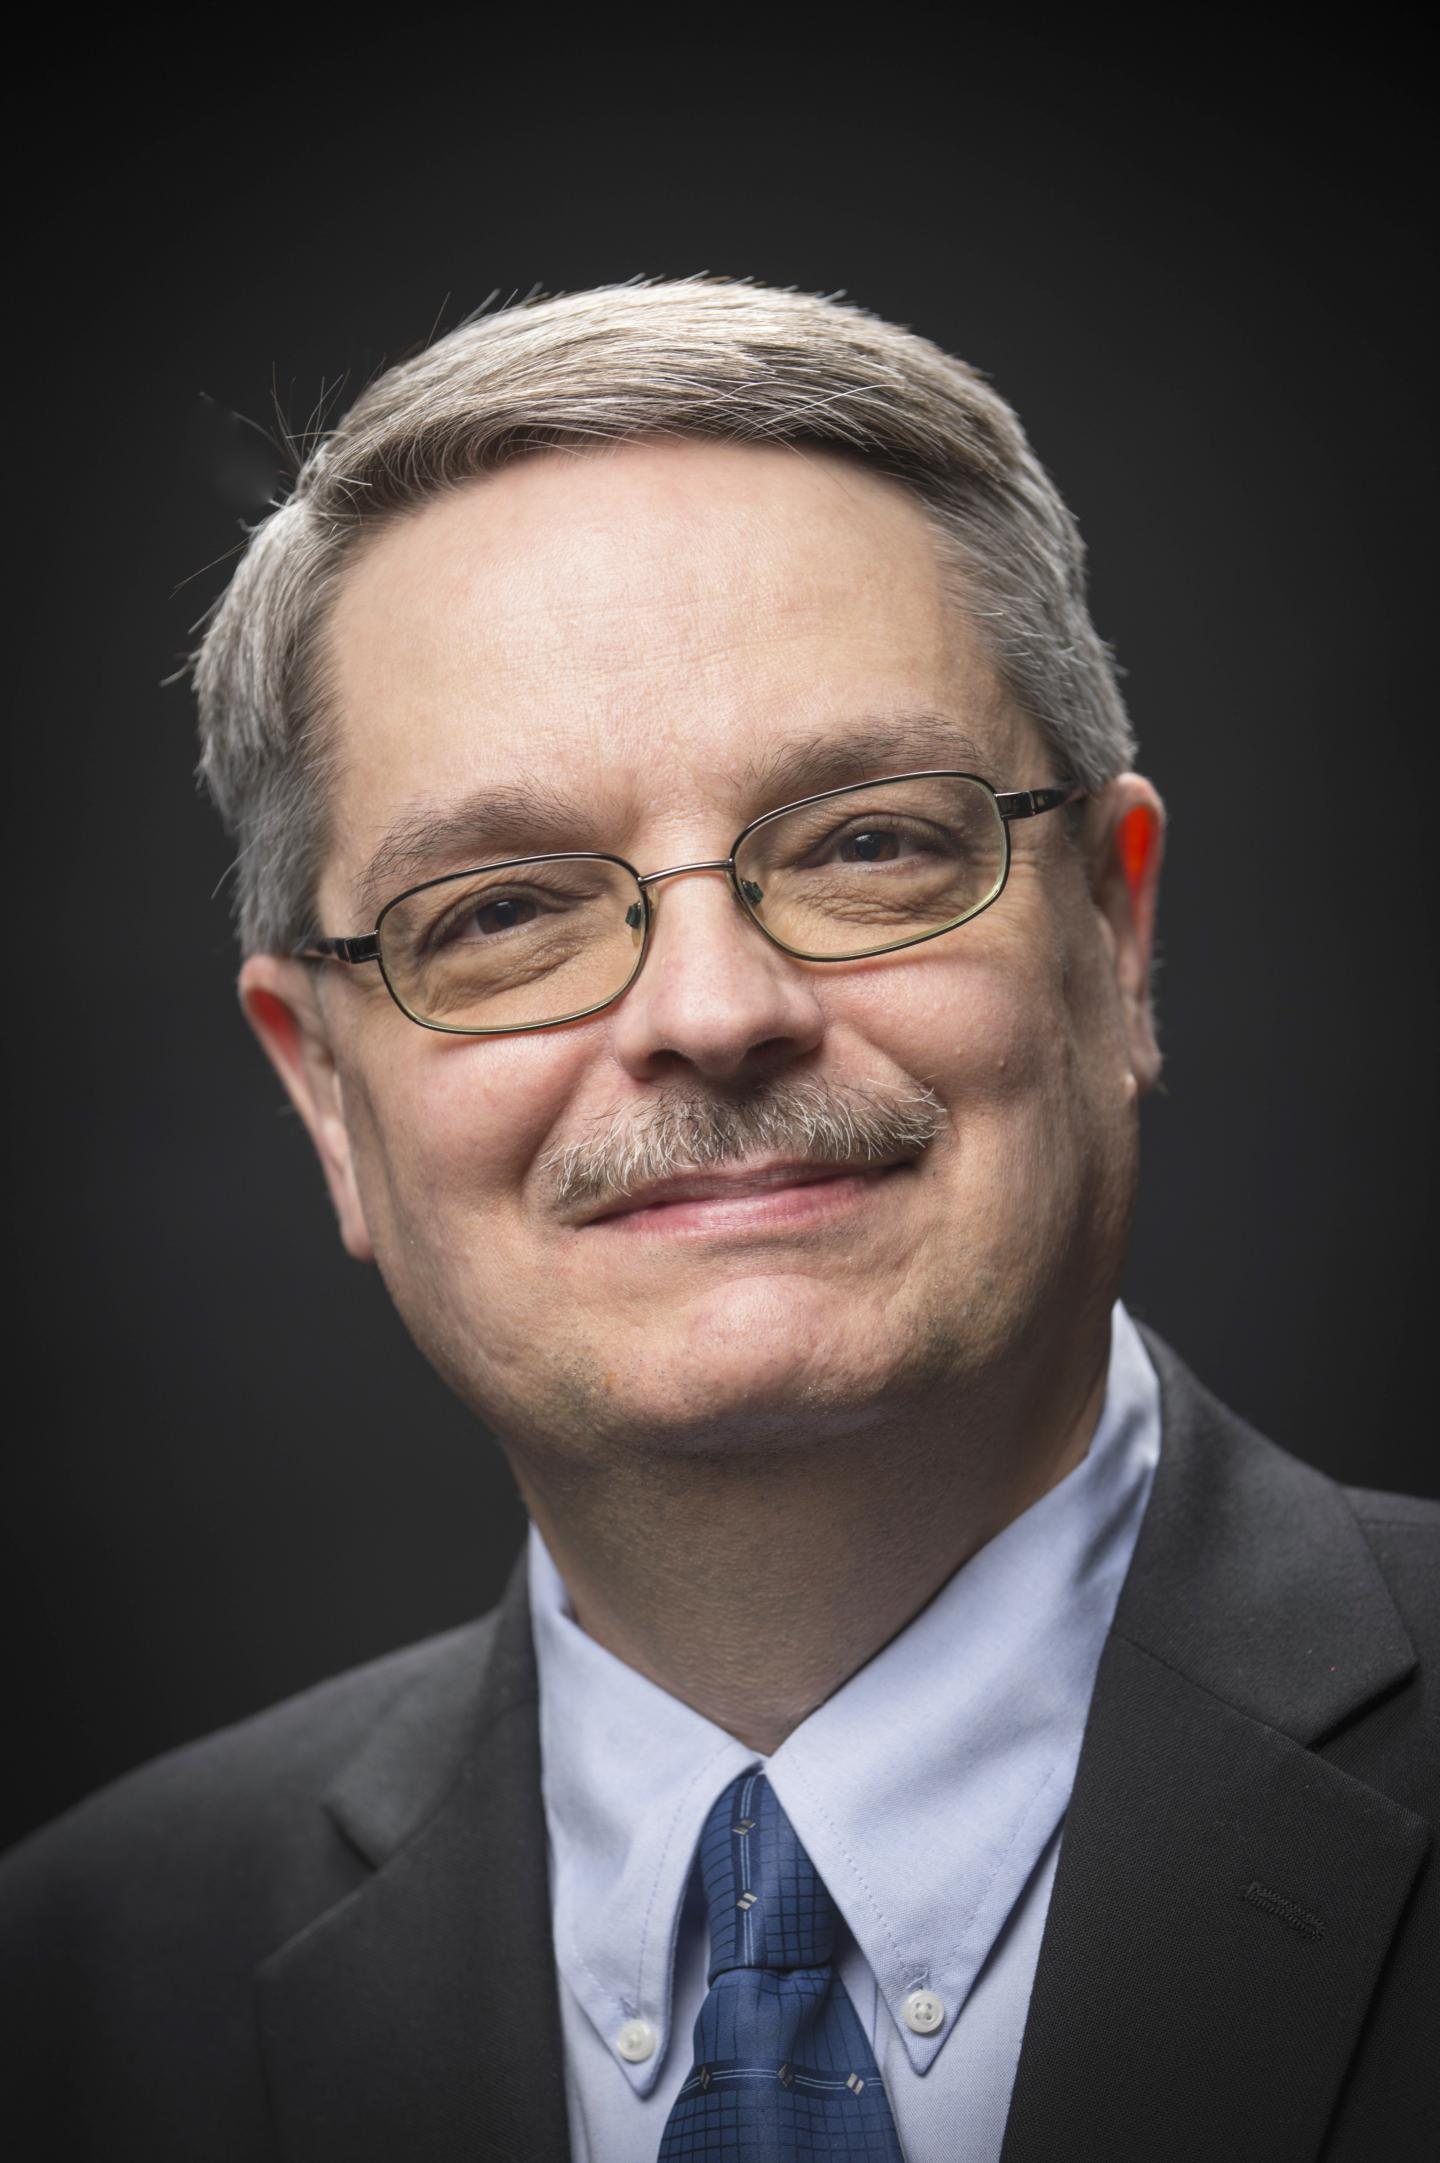 Don Lincoln, Winner of the 2017 Andrew Gemant Award from the American Institute of Physics